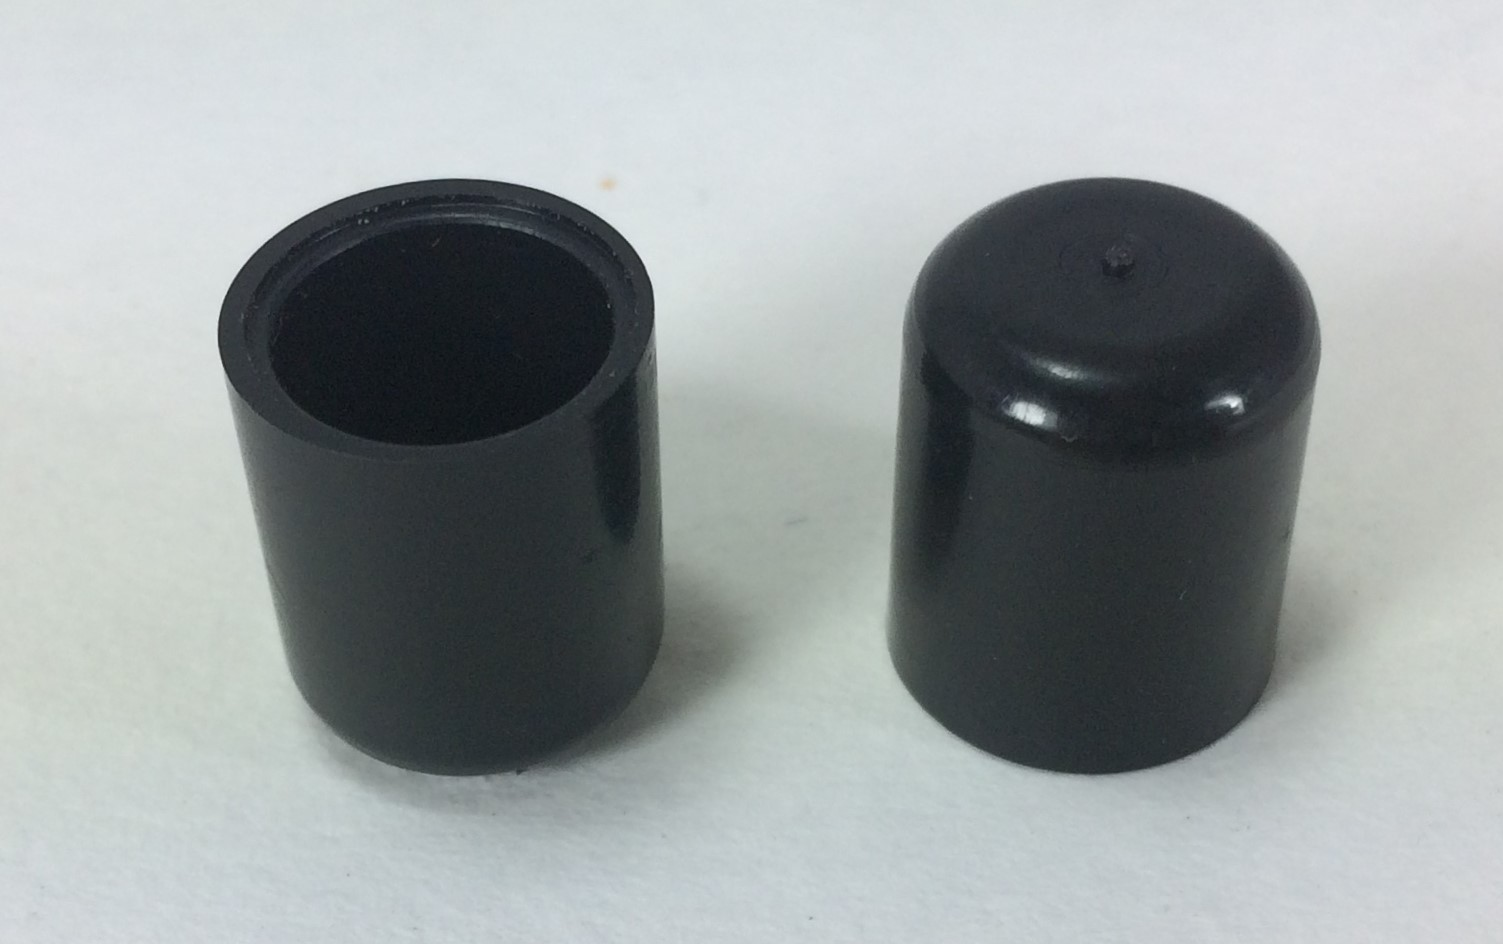 External fit standard round ferrule plastic end